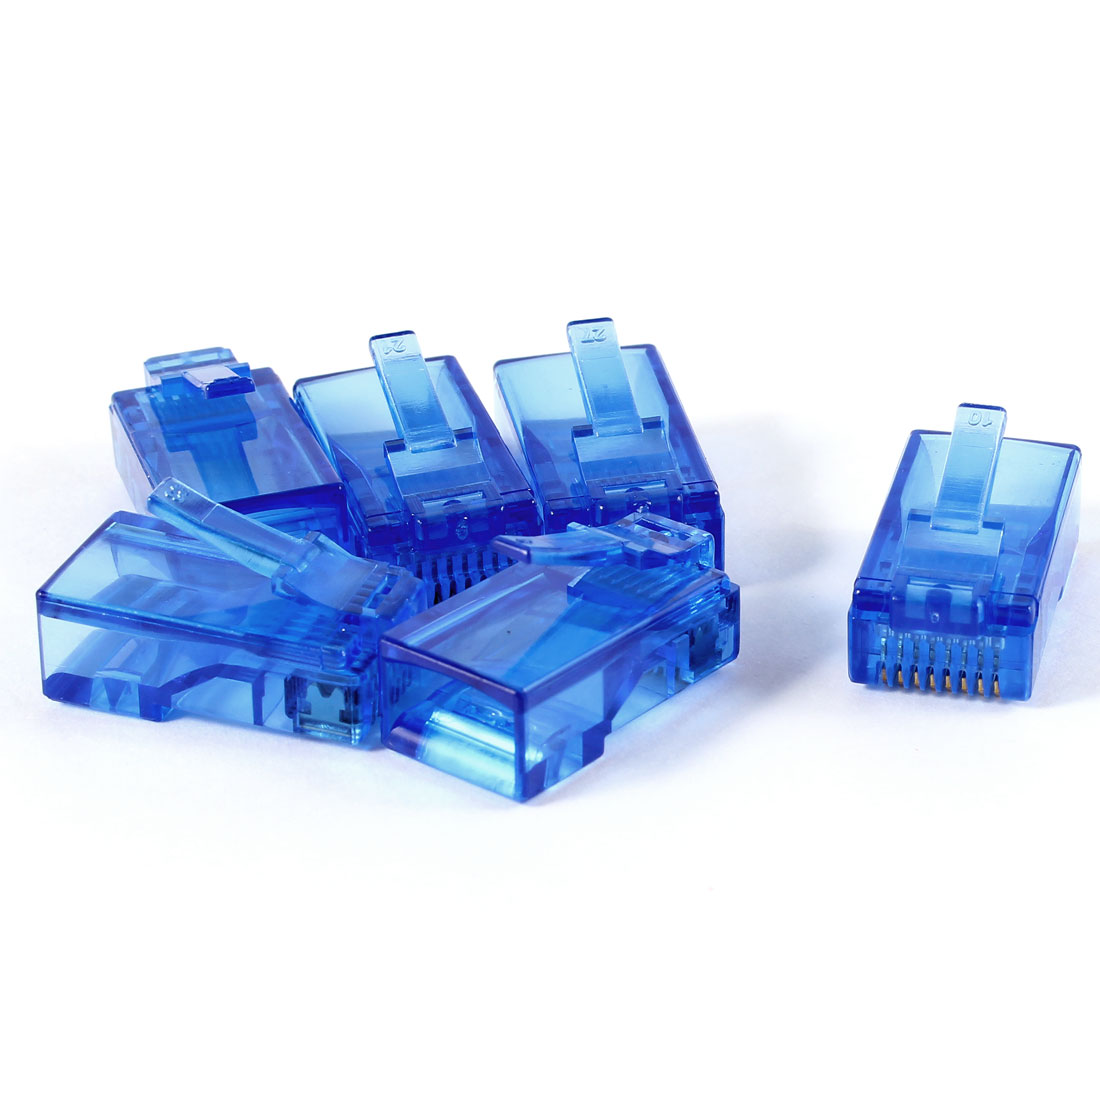 6 Pcs Dark Blue Plastic Shell RJ45 8P8C Modular Jack End Network Connector